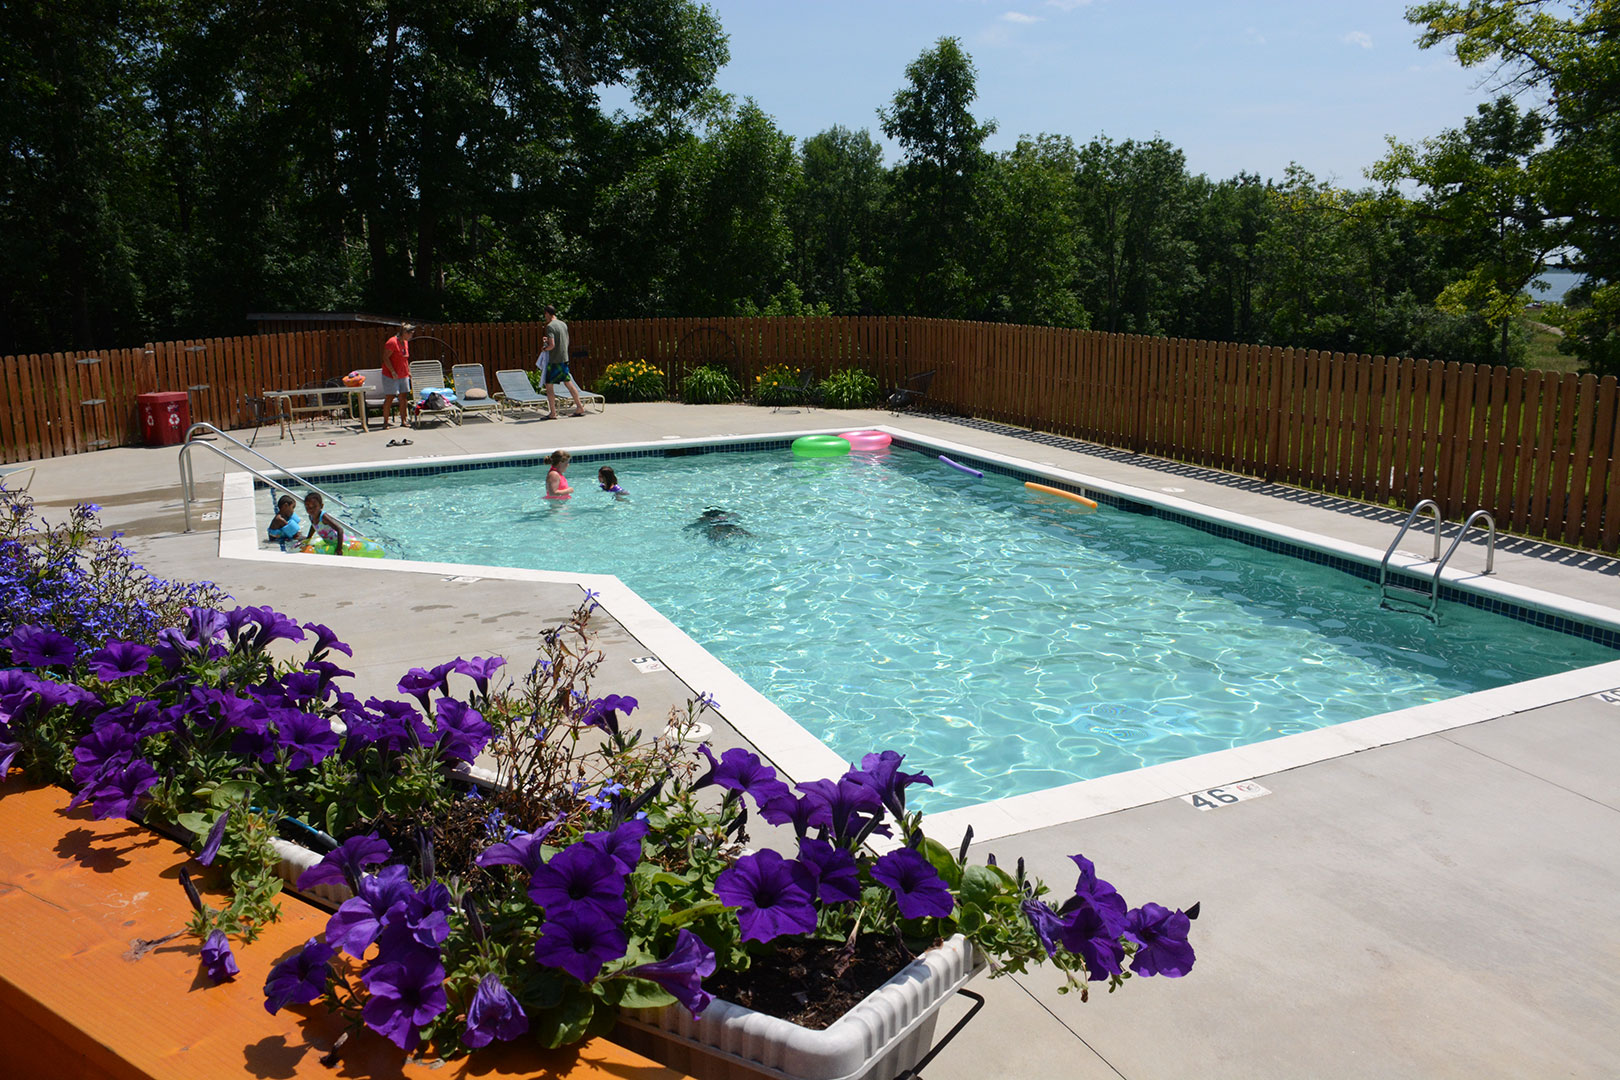 The heated pool at Little Winnie Resort is open from Memorial Day thru Labor Day.